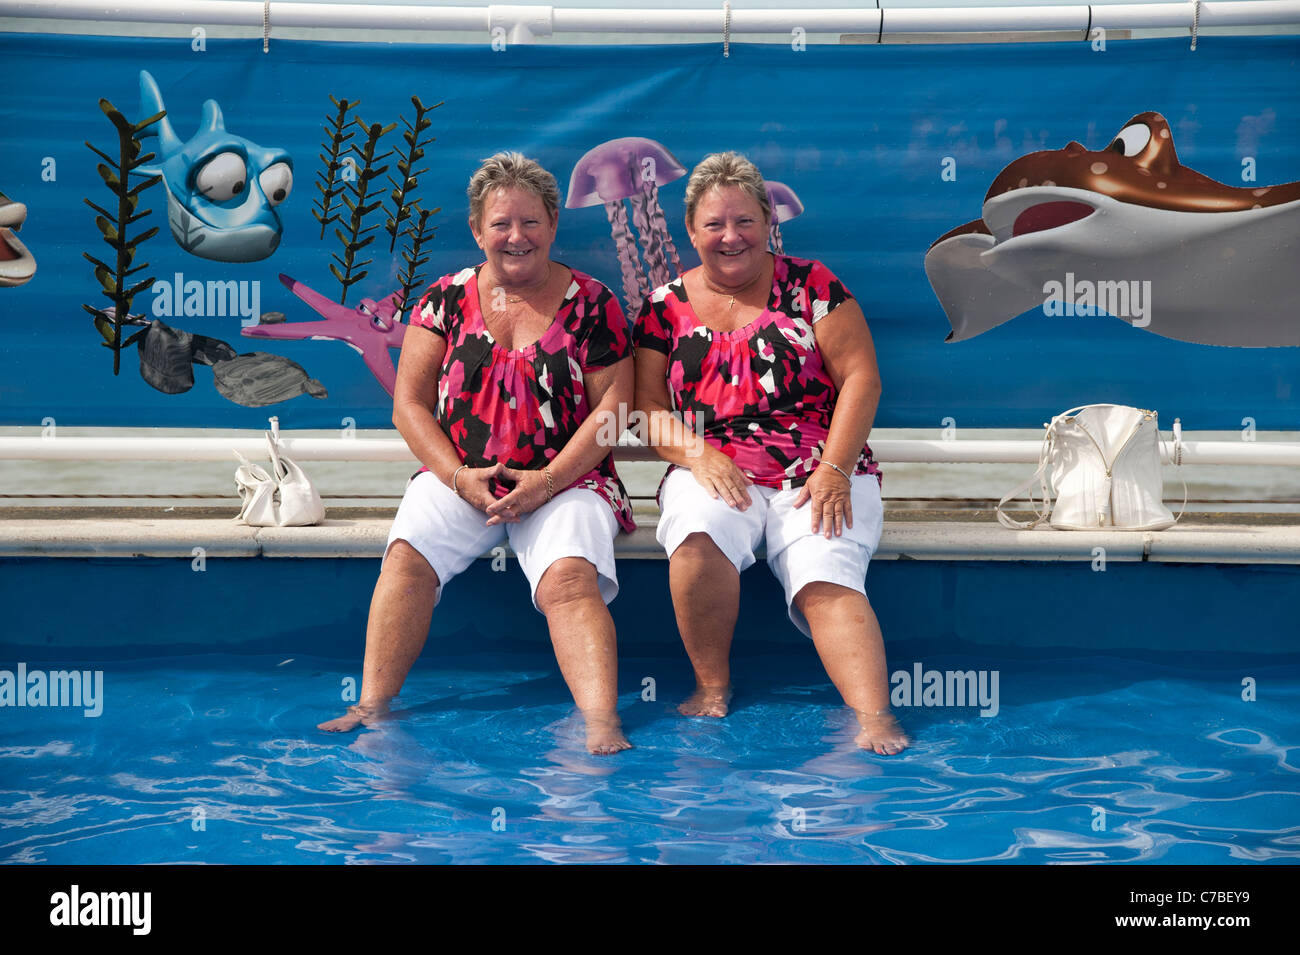 Two middle aged identical twin sisters wearing matching clothes in the paddling pool, Aberystwyth Wales UK, summer - Stock Image